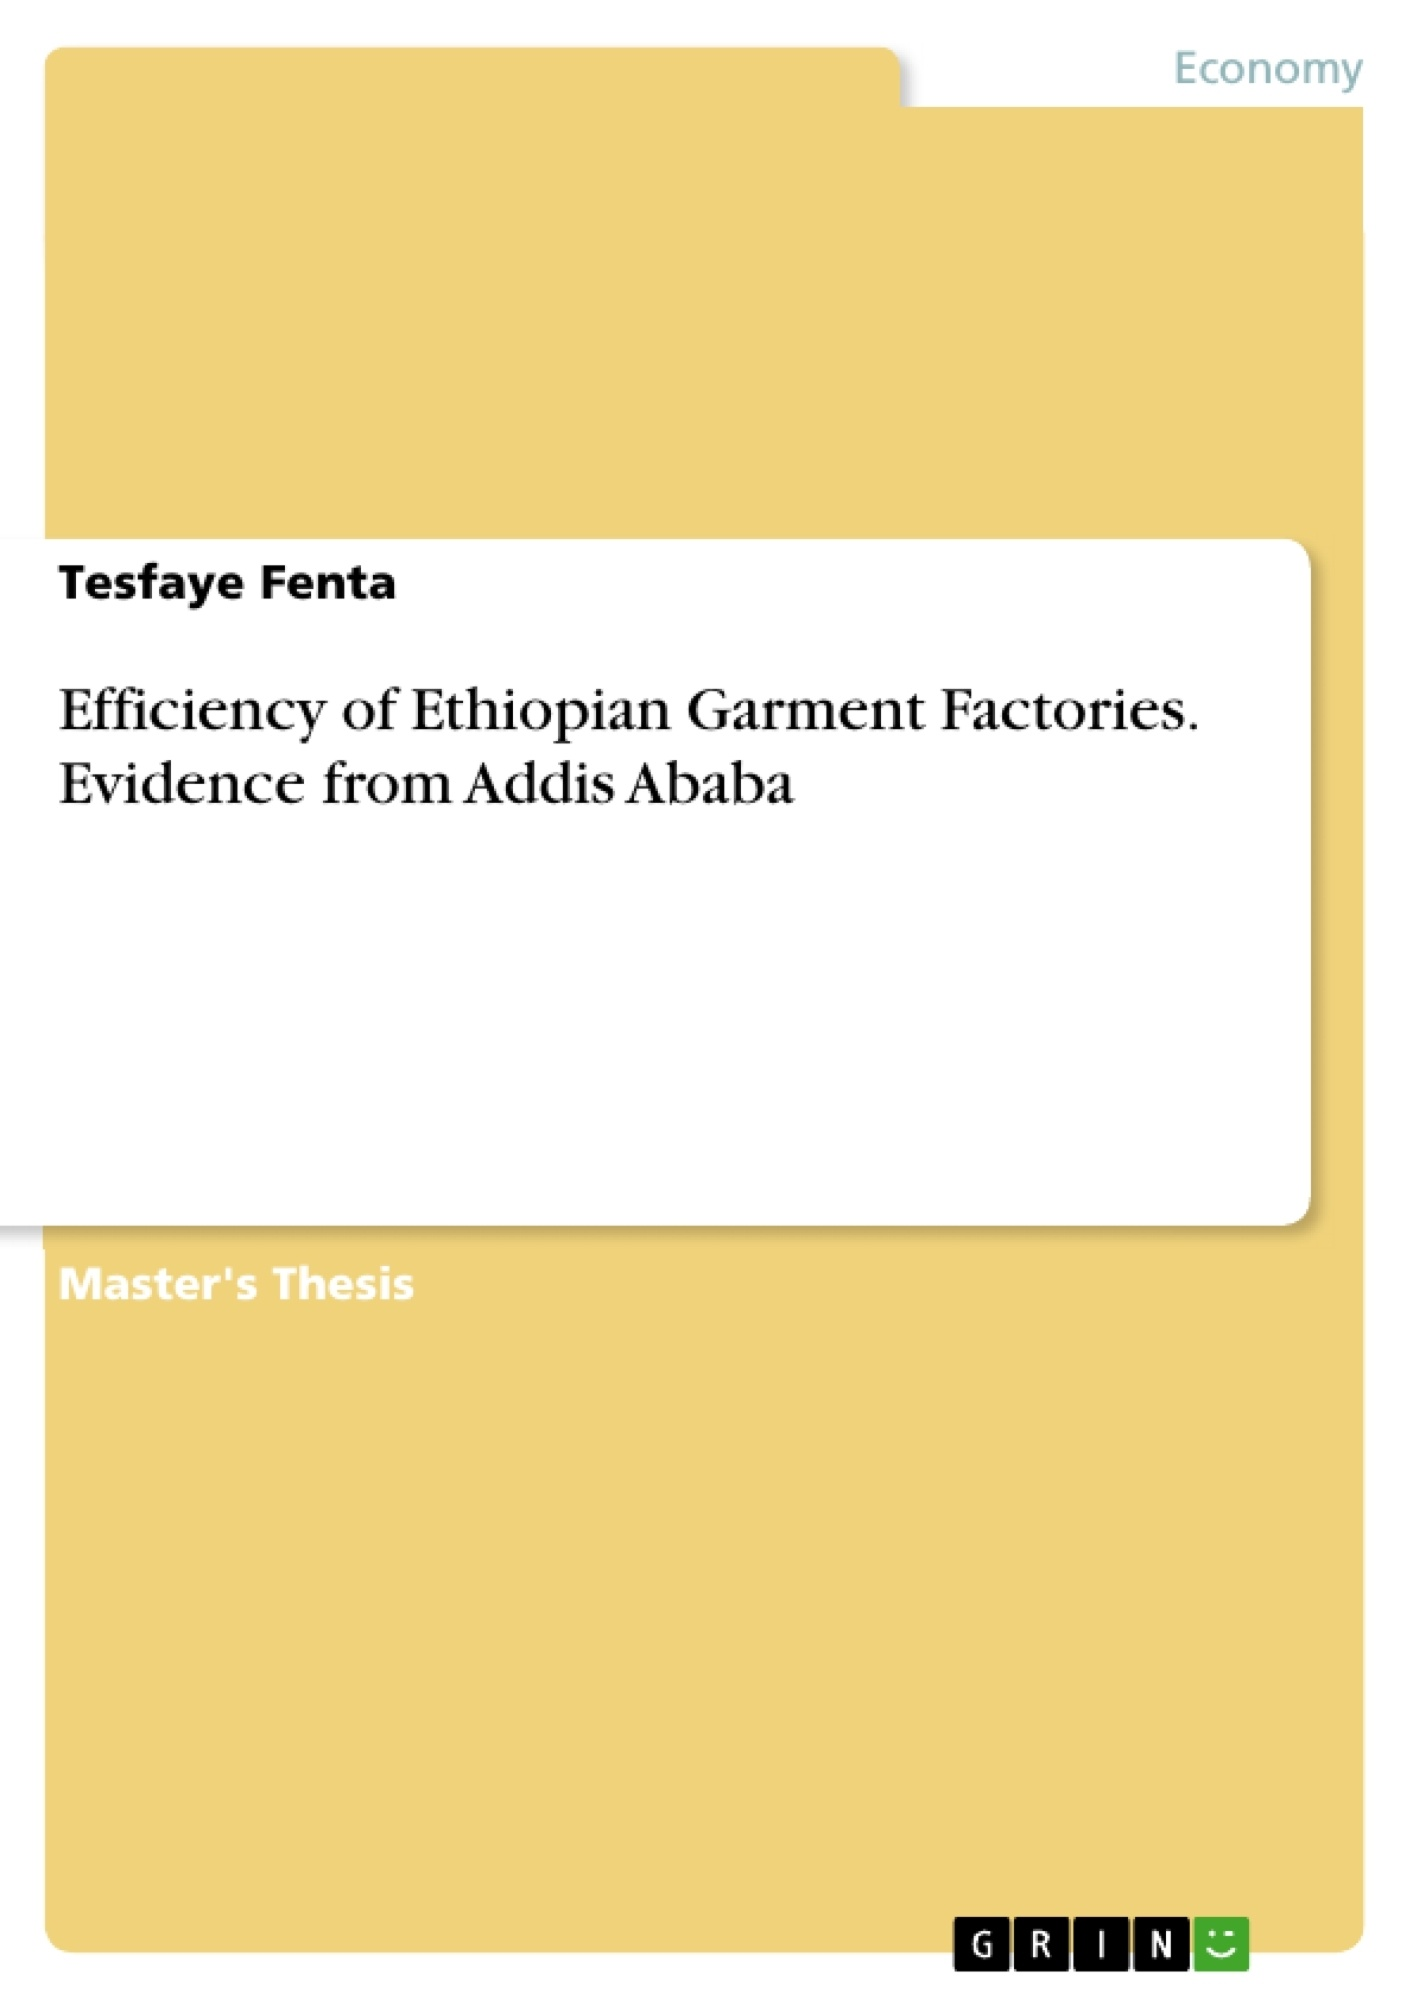 GRIN - Efficiency of Ethiopian Garment Factories  Evidence from Addis Ababa